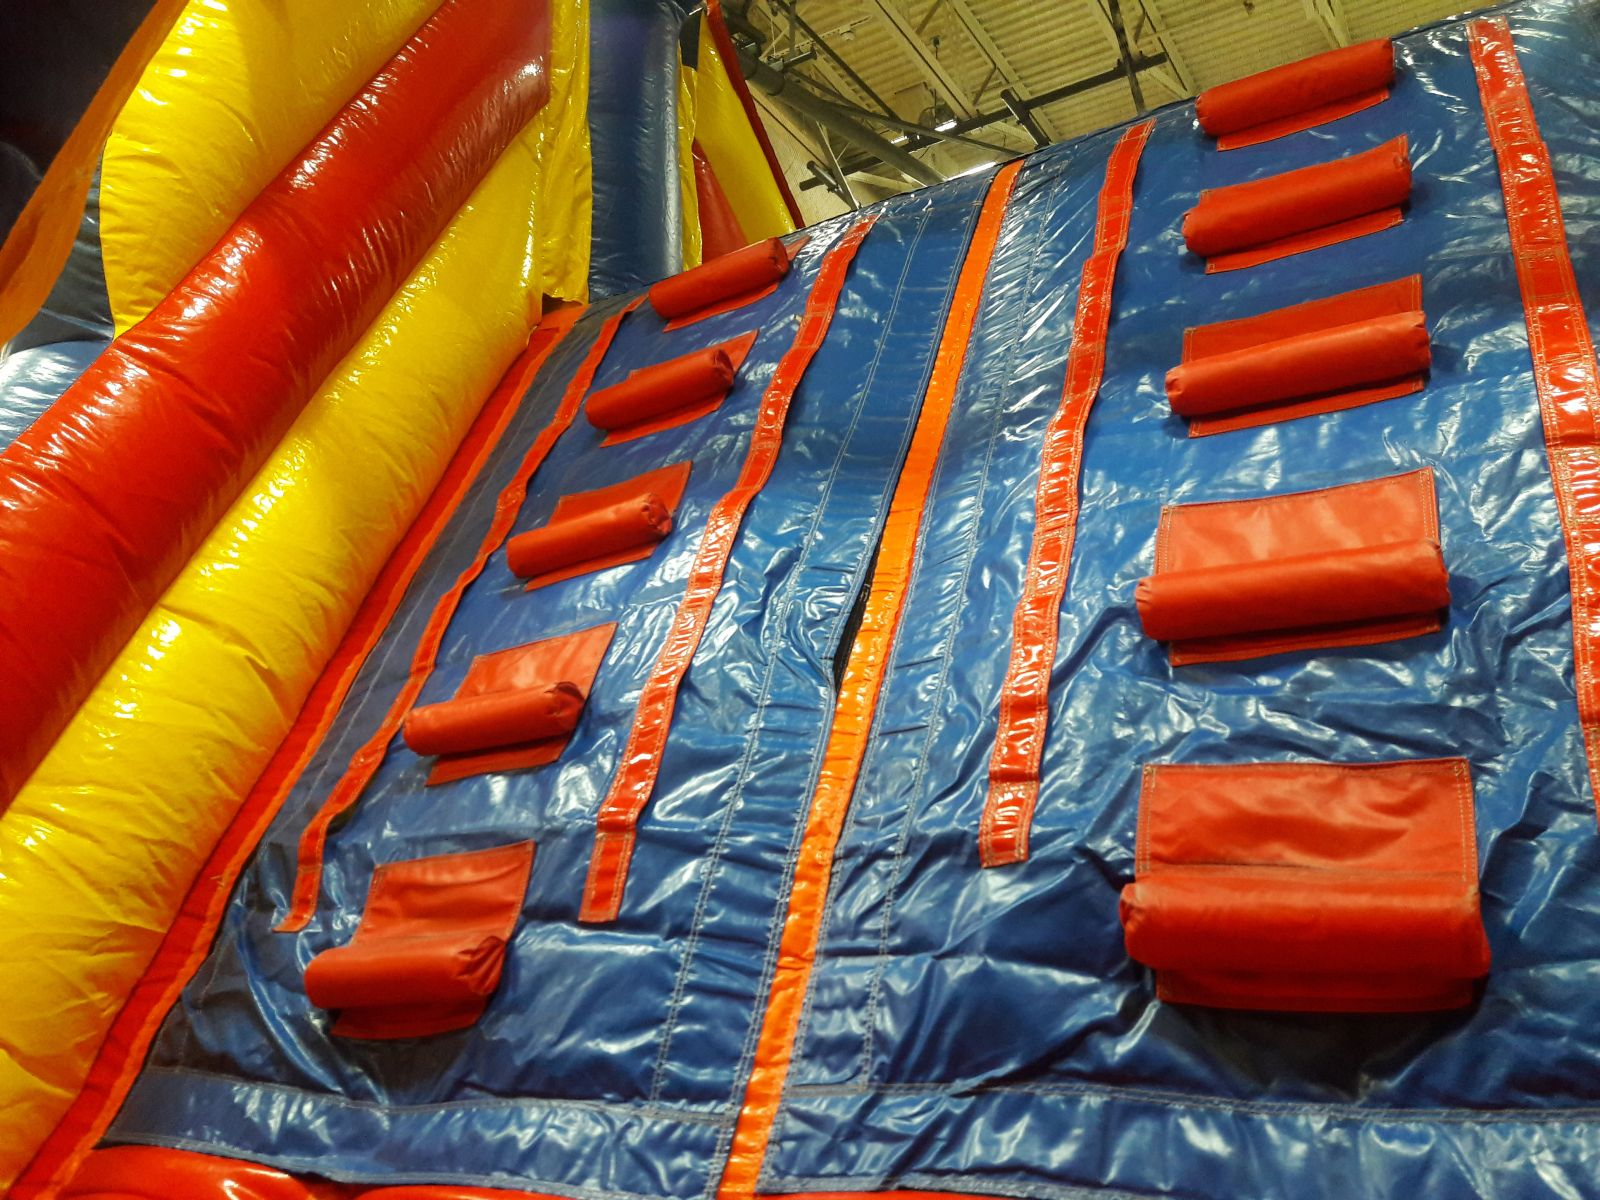 Climbing wall inside Inflatable Obstacle course